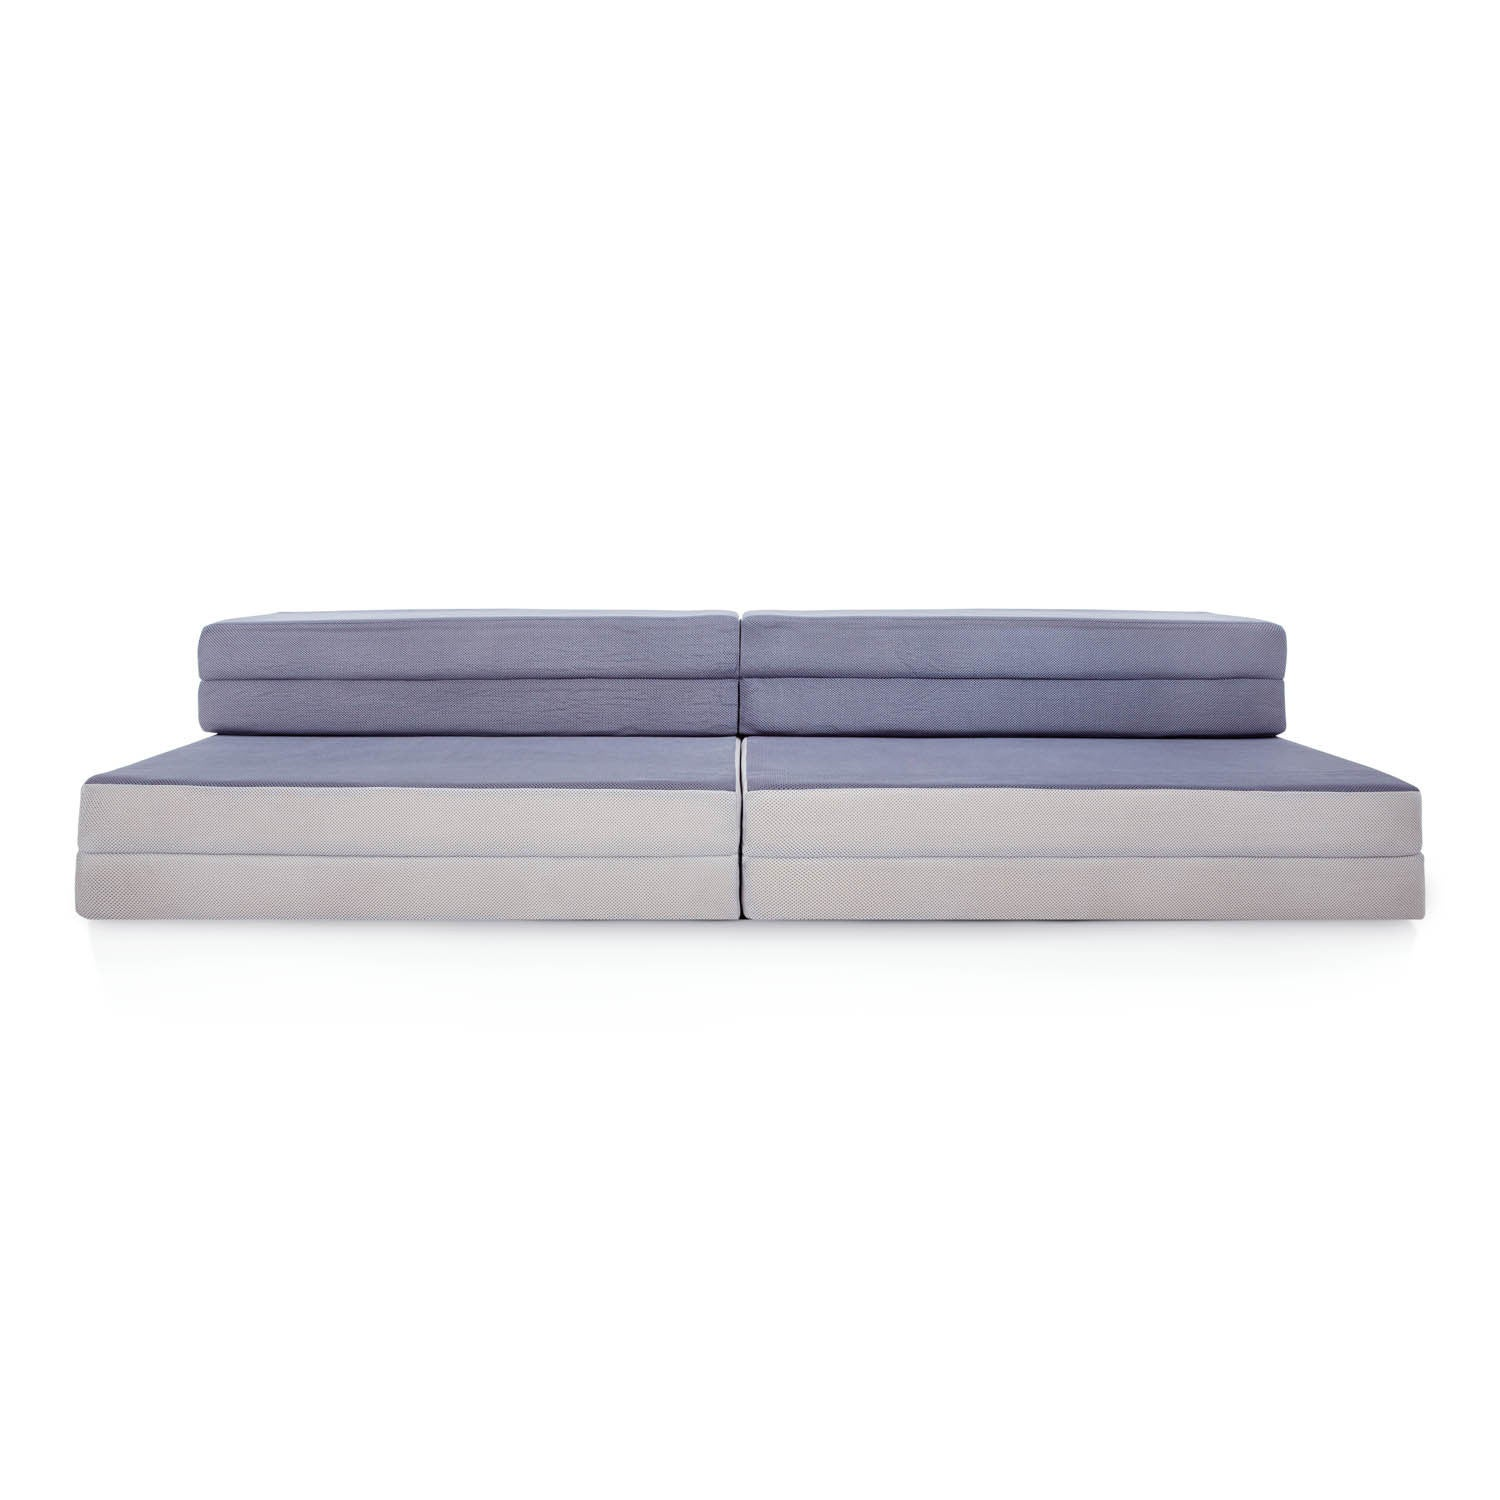 Lucid Convertible Folding Foam Sofa Bed On Free Shipping Today 11373763